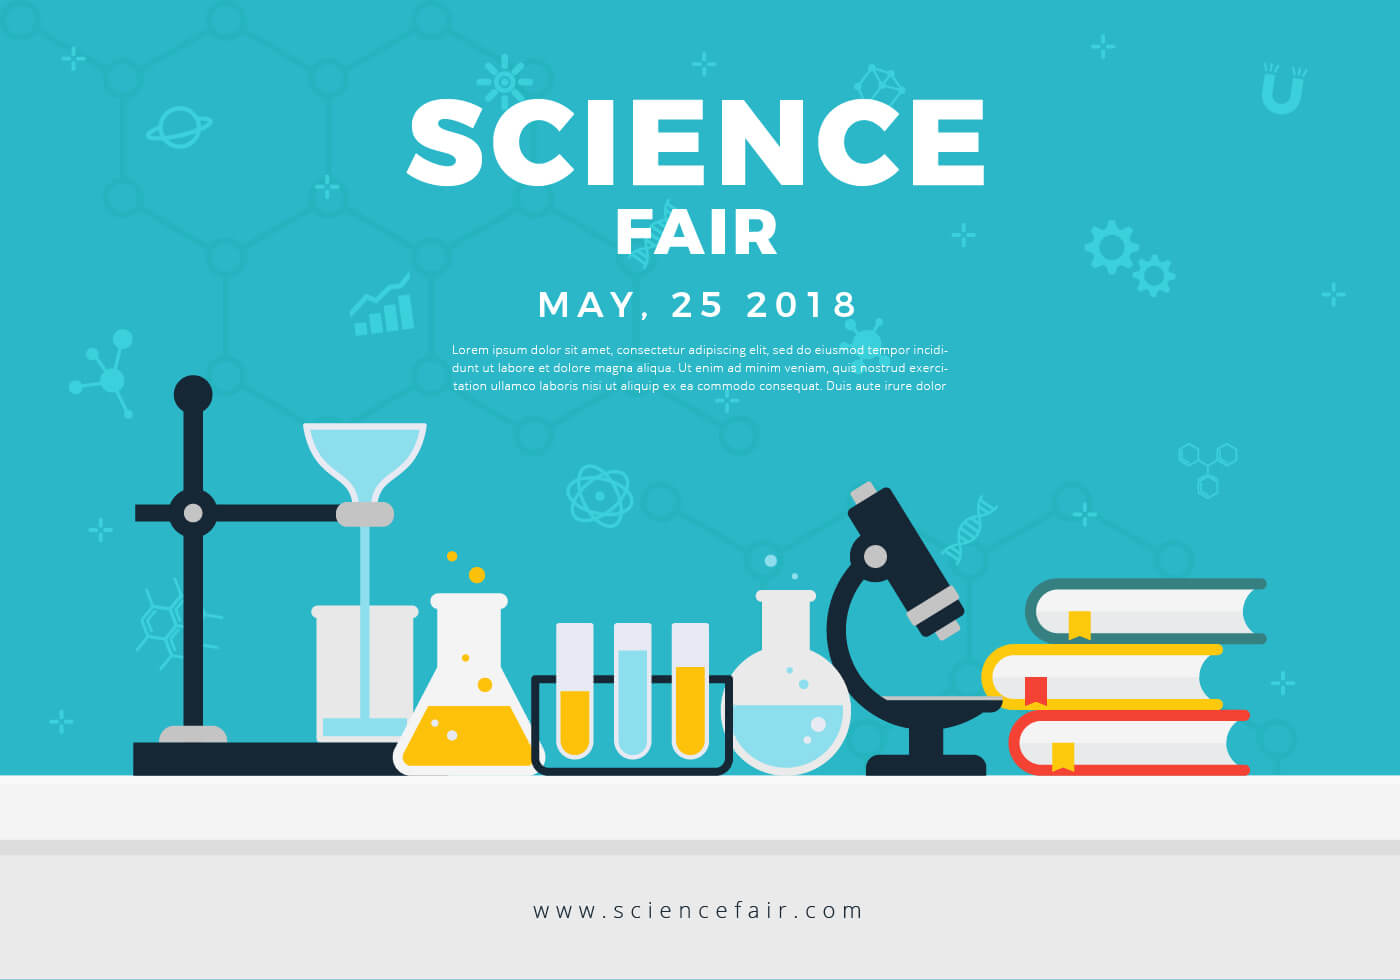 Science Fair Poster Banner - Download Free Vectors, Clipart Within Science Fair Banner Template